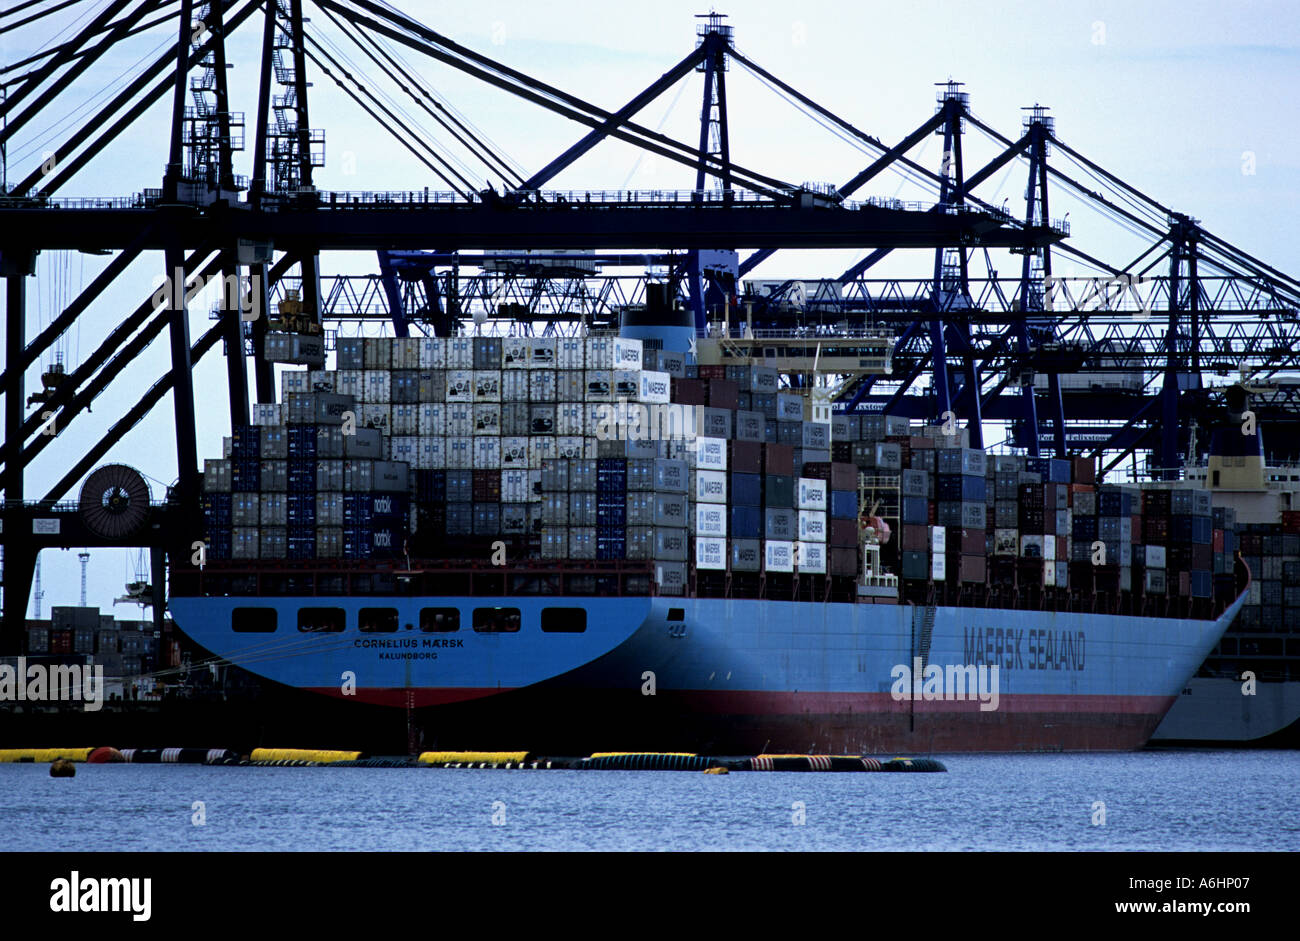 'Cornelius Maersk' container ship at berth on Trinitry Quay at the Port of Felixstowe, Suffolk, UK. - Stock Image